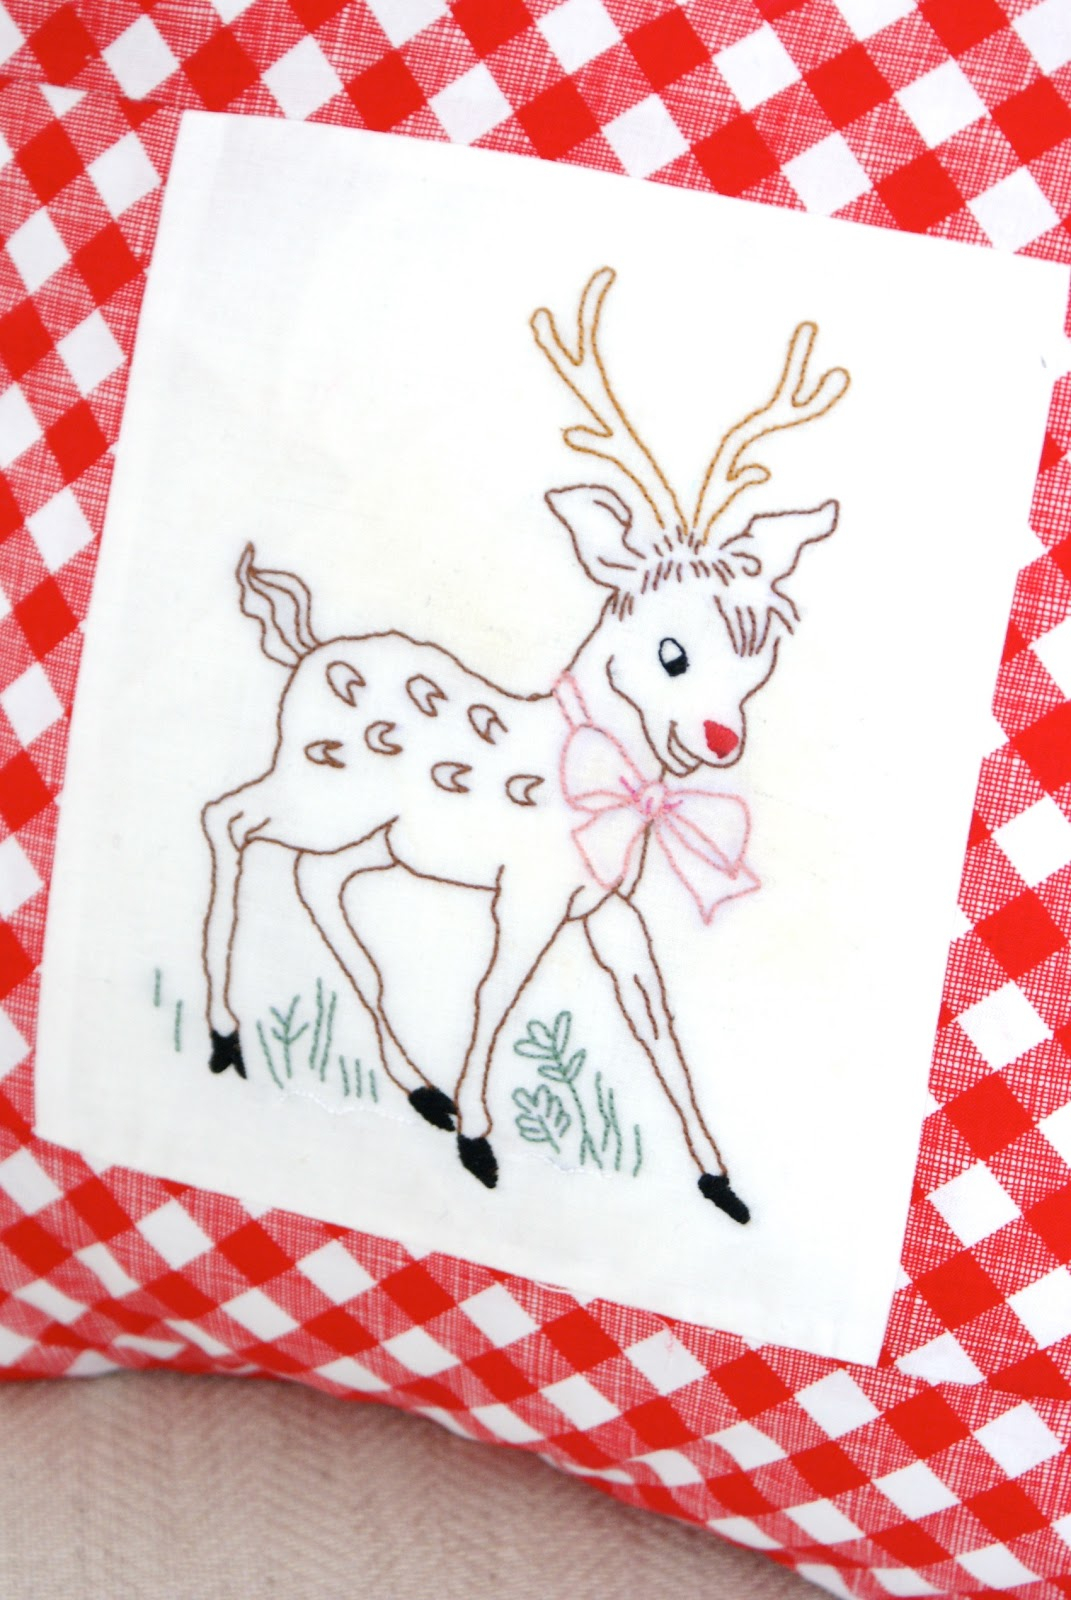 Christmas Embroidery Patterns Messyjesse A Quilt Blog Jessie Fincham Christmas Reindeer